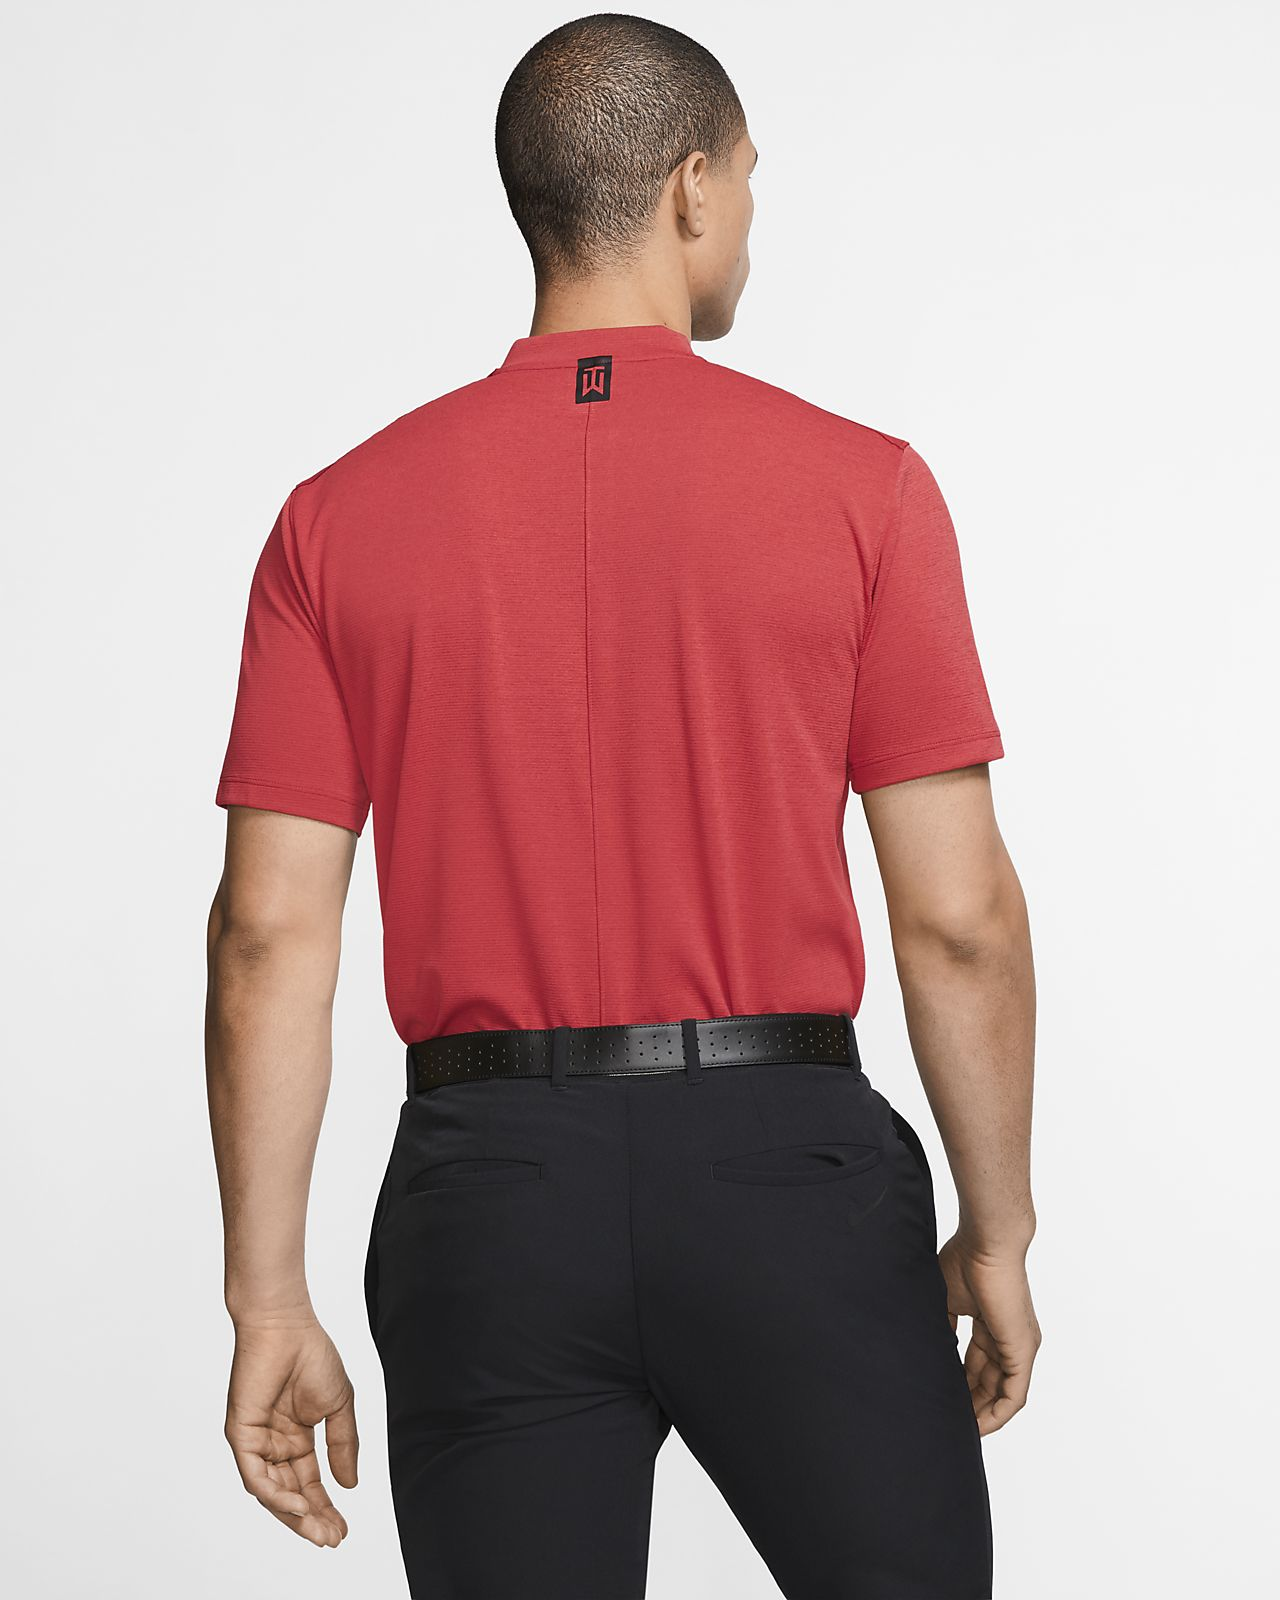 608fceb91 Nike AeroReact Tiger Woods Vapor Men's Golf Polo. Nike.com MA